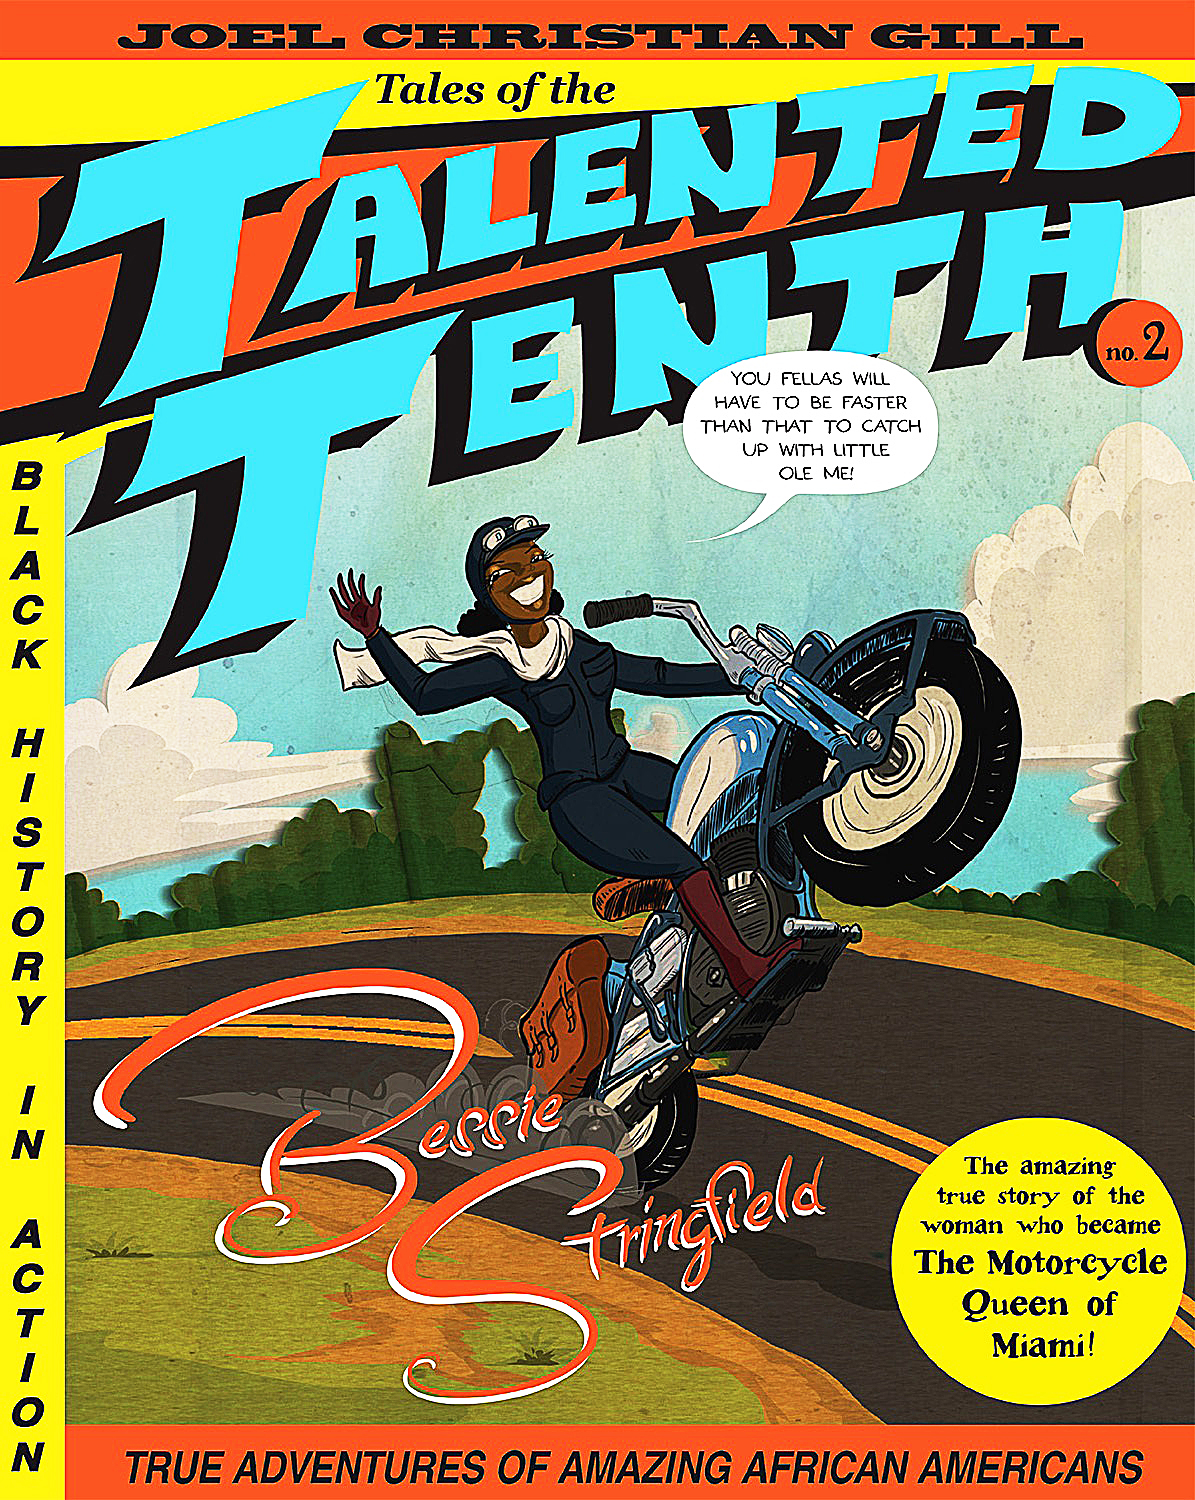 'Tales of the Talented Tenth: Bessie Stringfield' by Joel Christian Gill